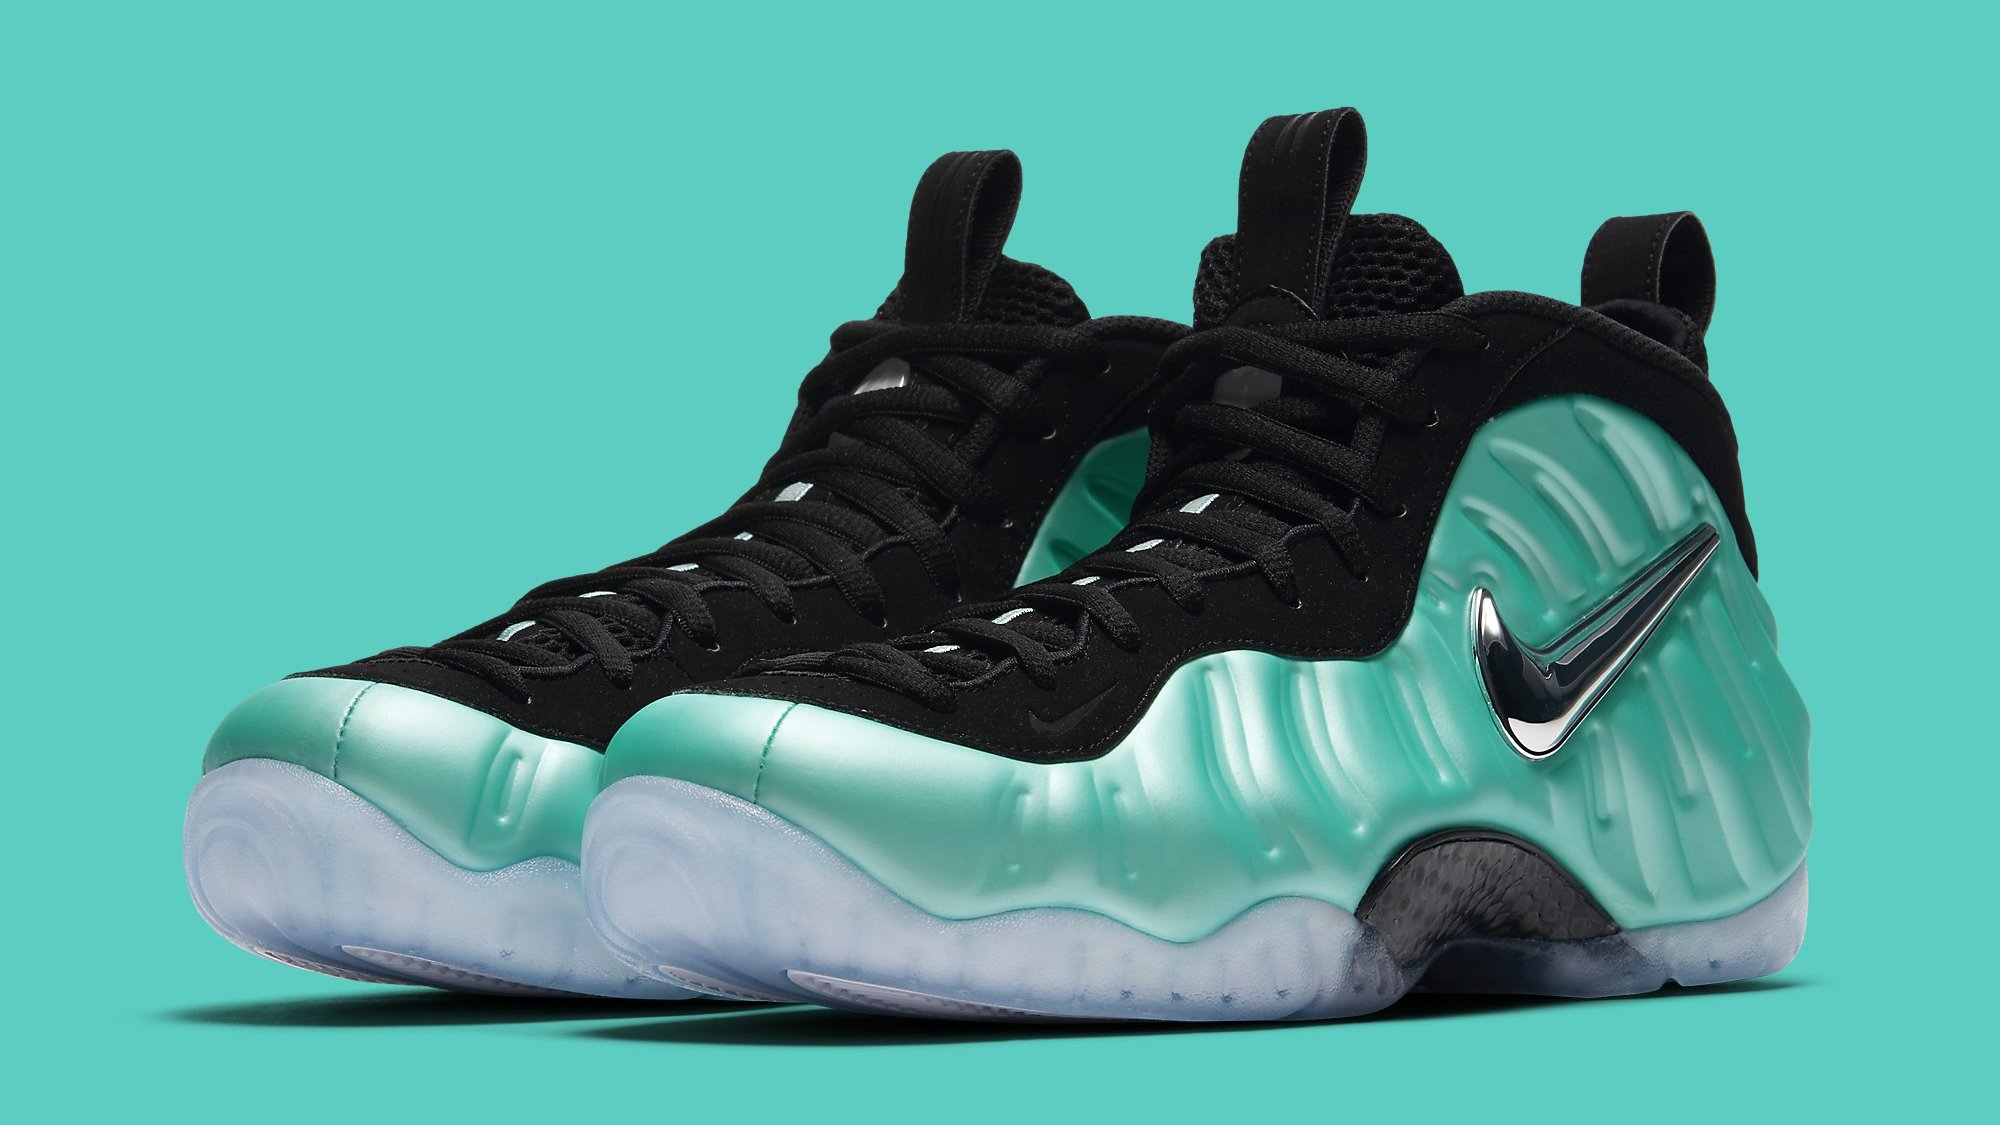 brand new 77eb4 d46dc Island Green Nike Air Foamposite Pro 624041-303 | Sole Collector